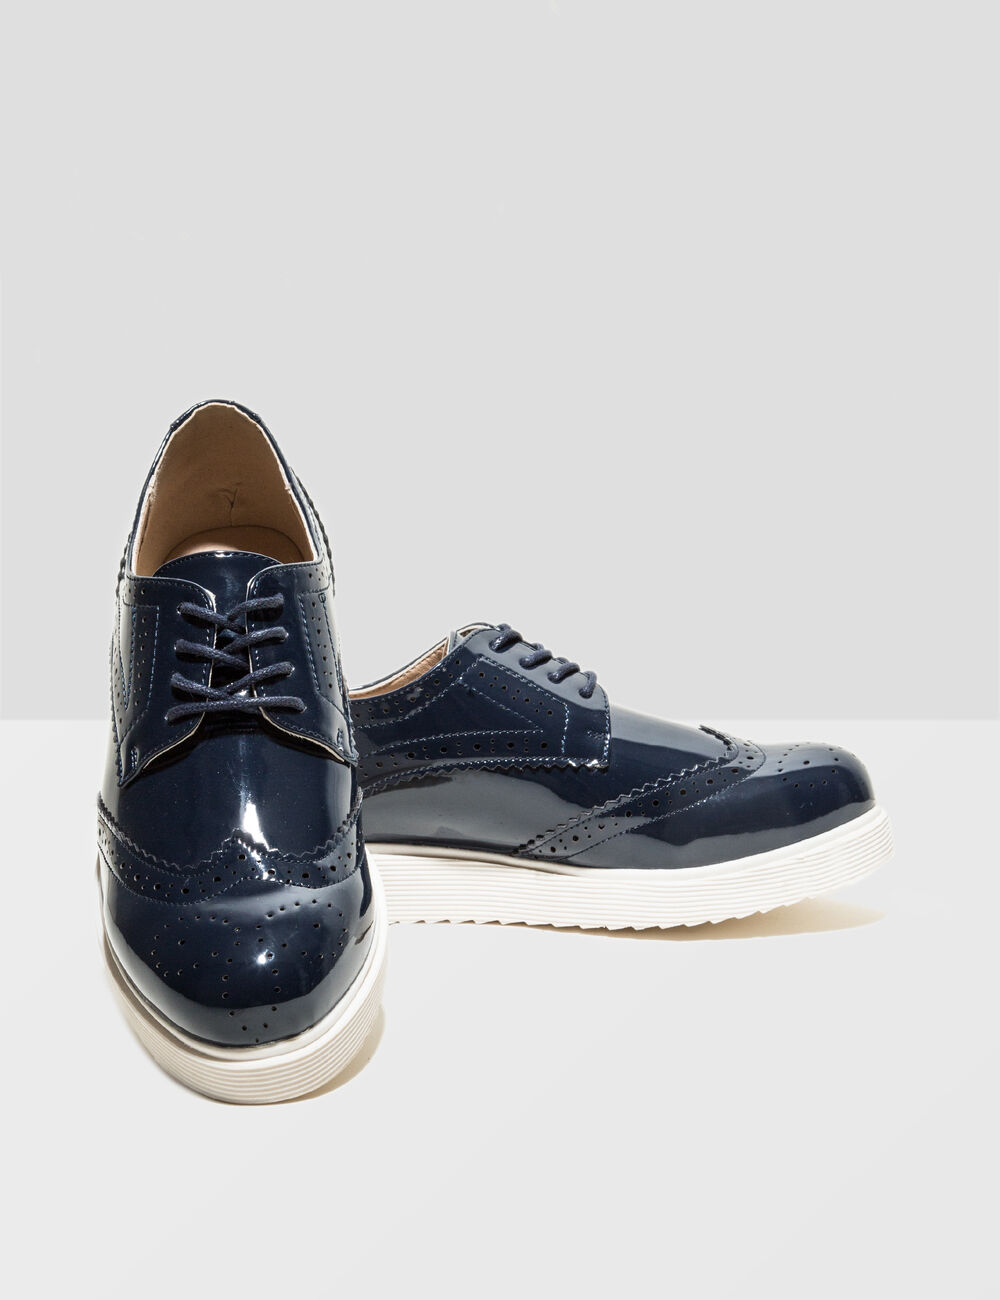 Black patent derby shoes Black patent derby shoes